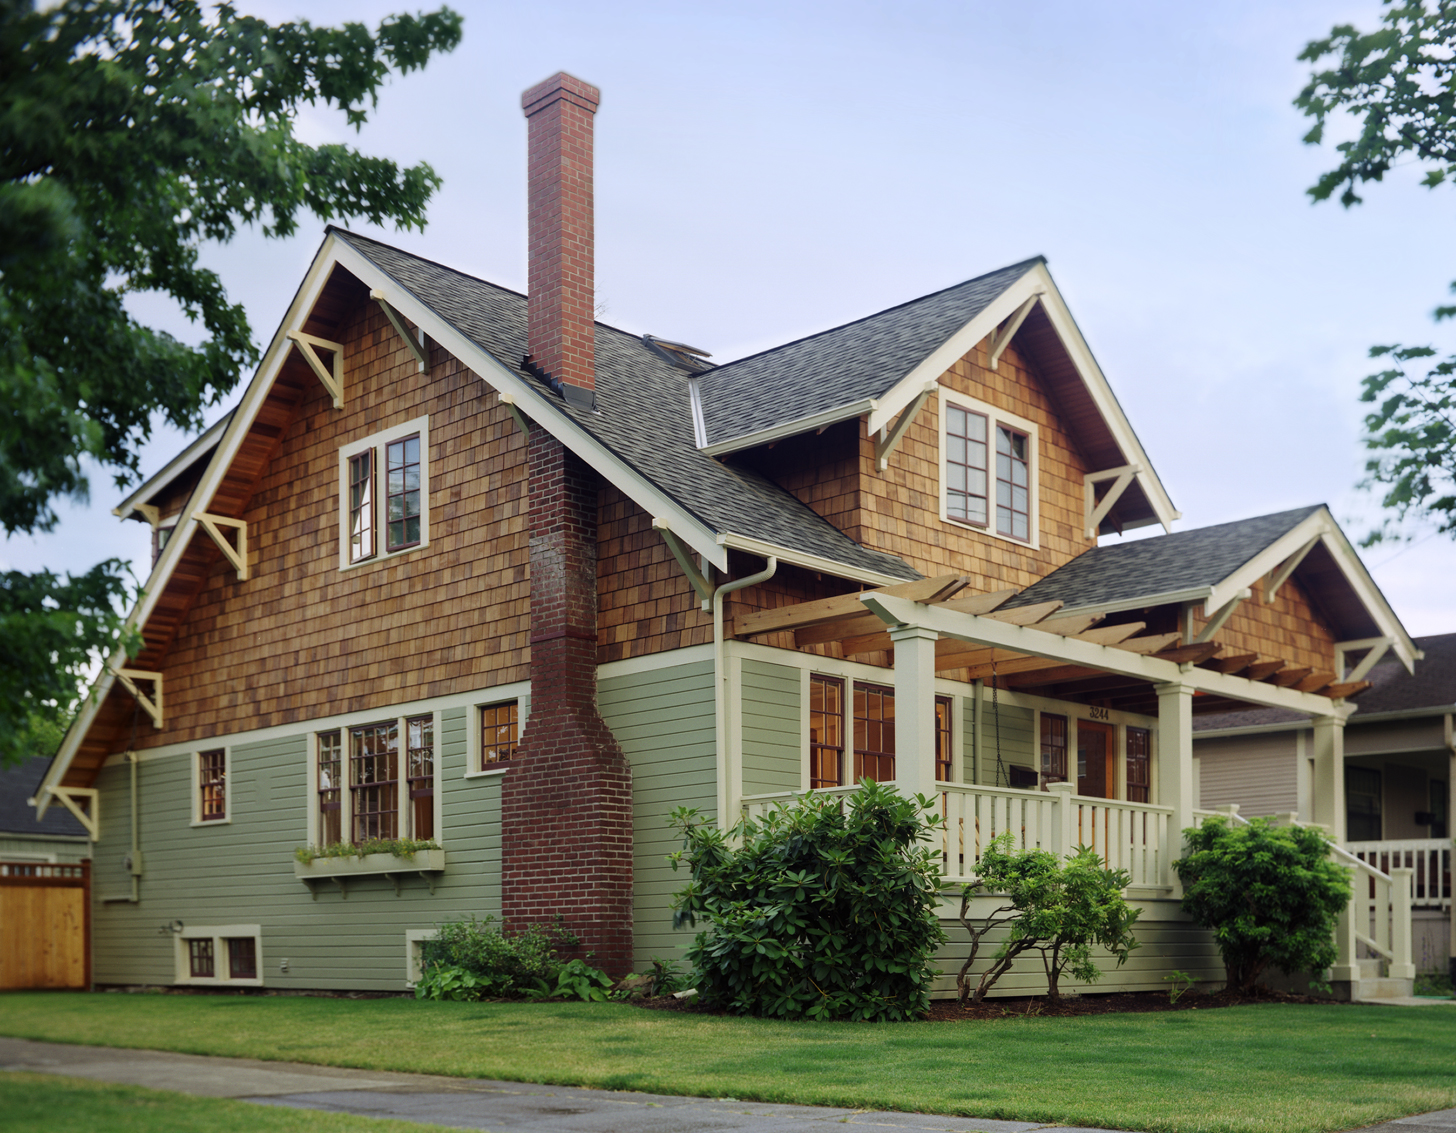 Seven home styles of the pacific northwest illustrated by for Exterior home styles